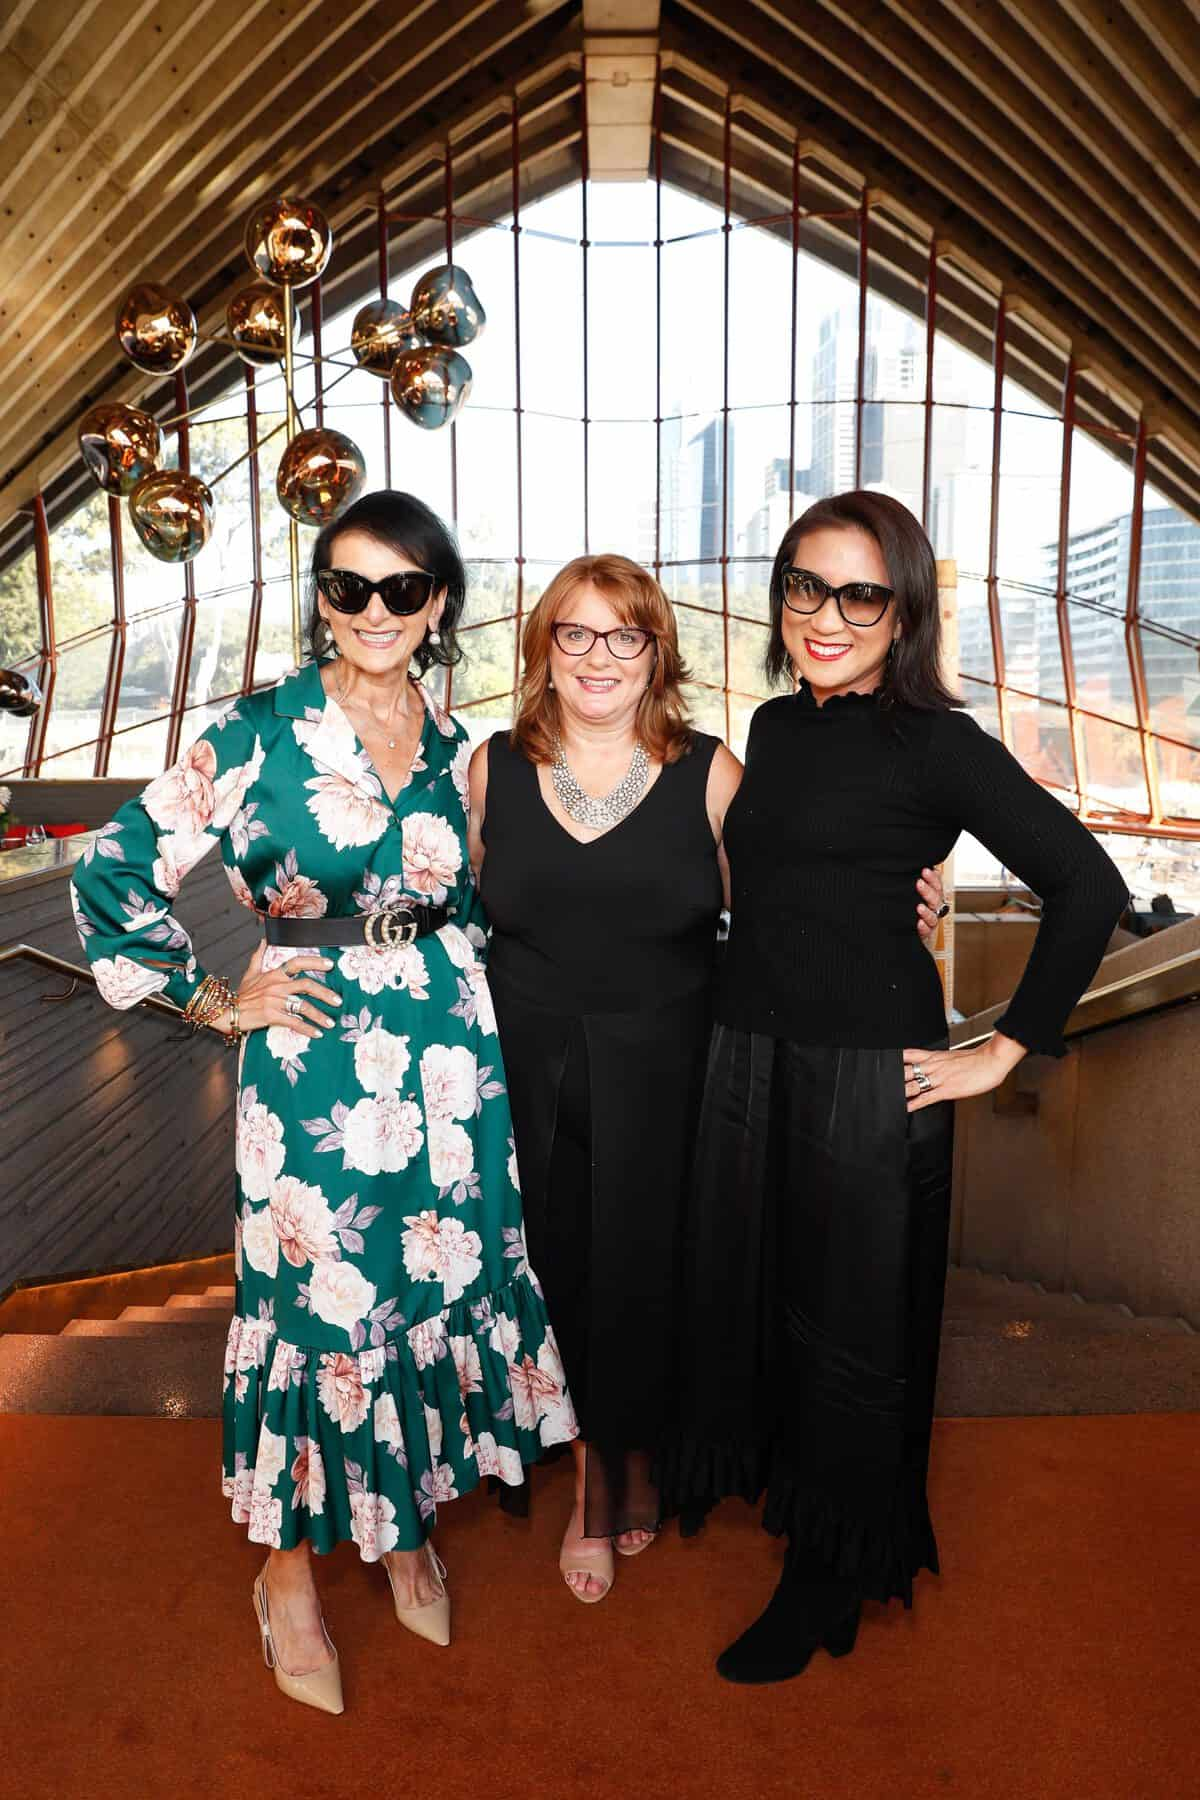 Marilyn Bracks, Melissa Shea and Sneha Andani attend the Fashion Mingle Australia VIP Luncheon at Bennelong Restaurant Sydney Opera House on May 14, 2019 in Sydney, Australia. (Photo by Hanna Lassen/Getty Images for Fashion Mingle)